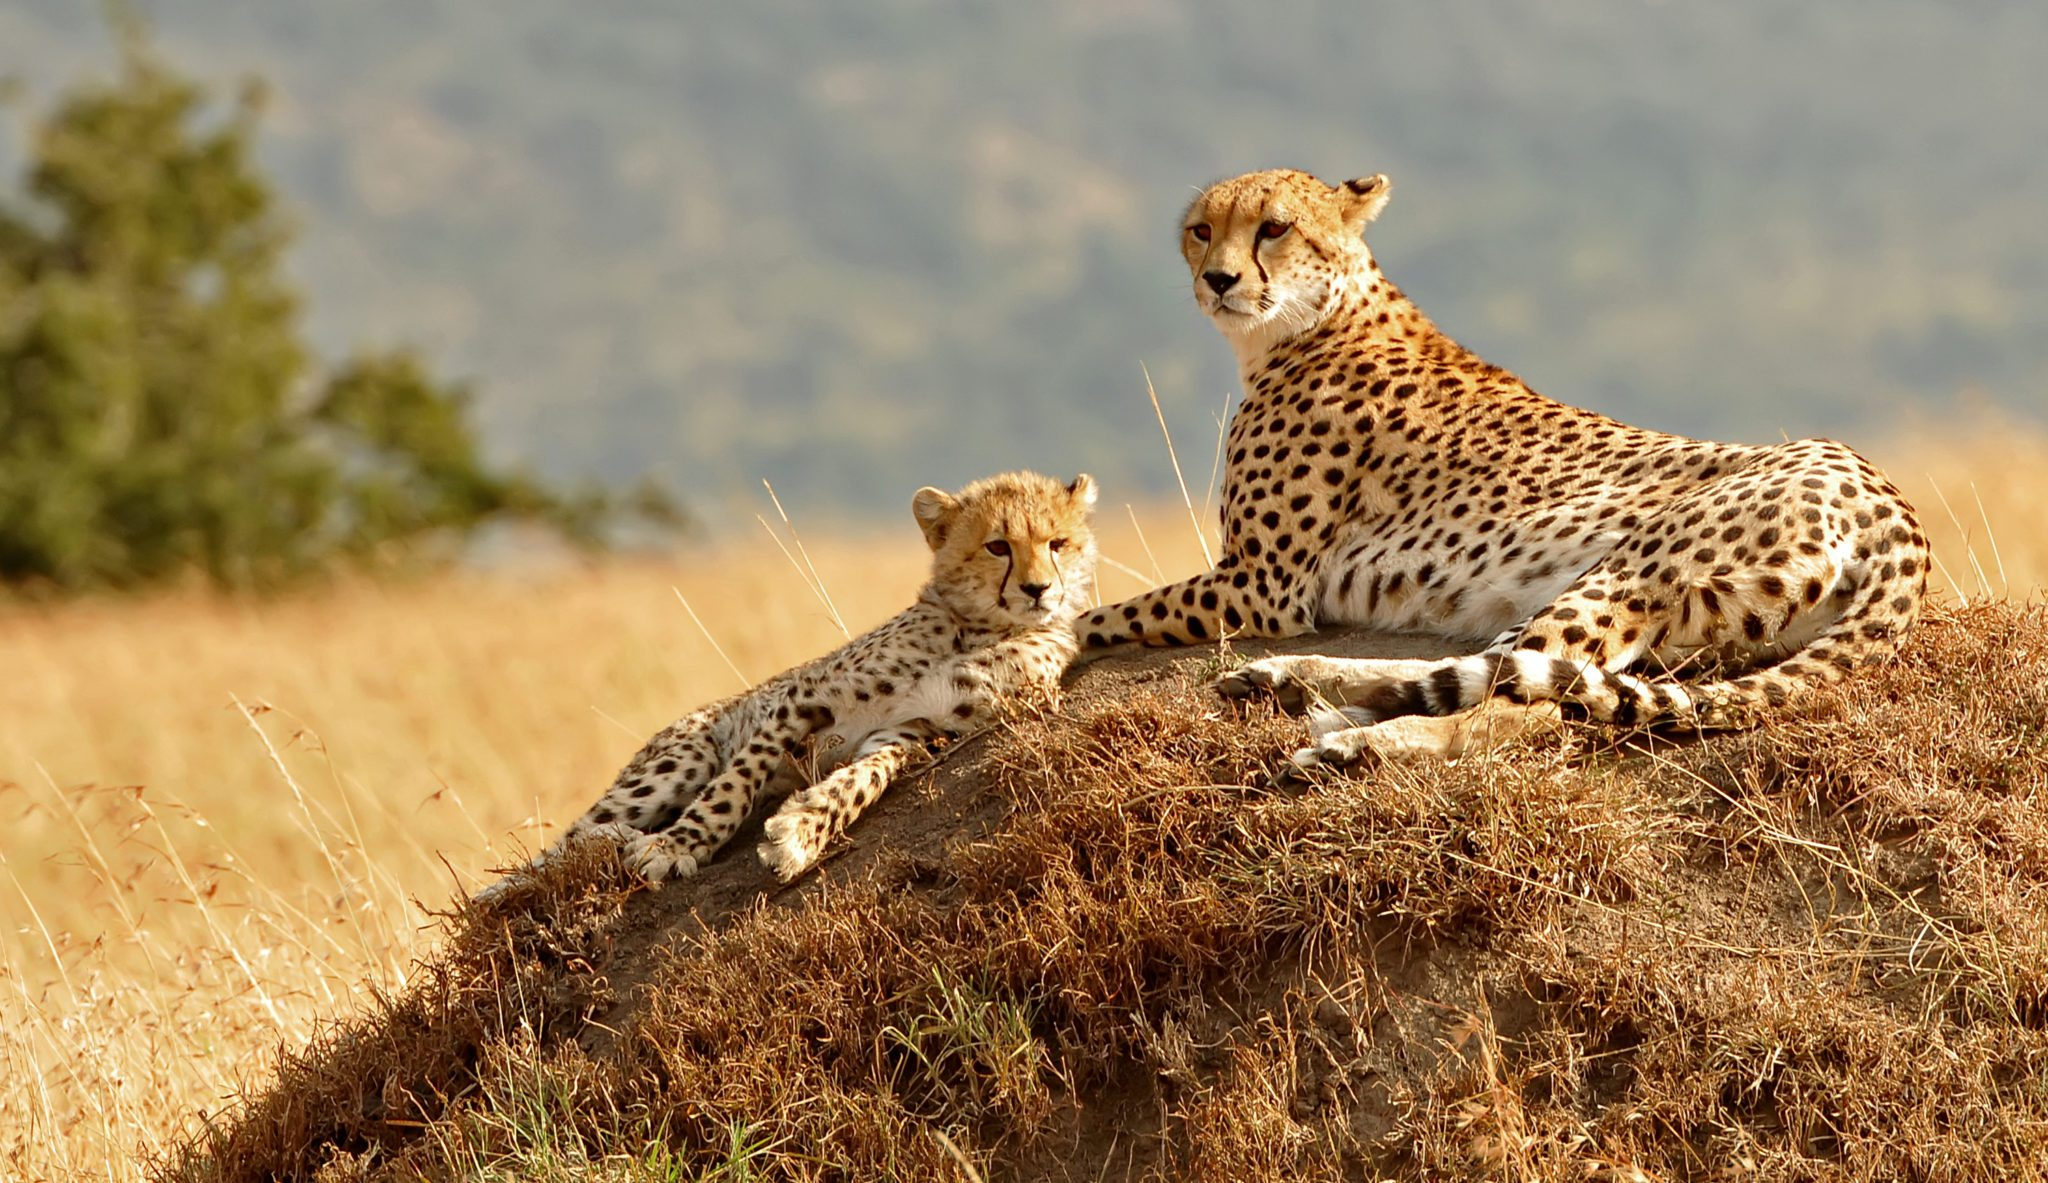 Cheetahs may be more vulnerable than other predators because 77 per cent of their habitat is outside of a protected area